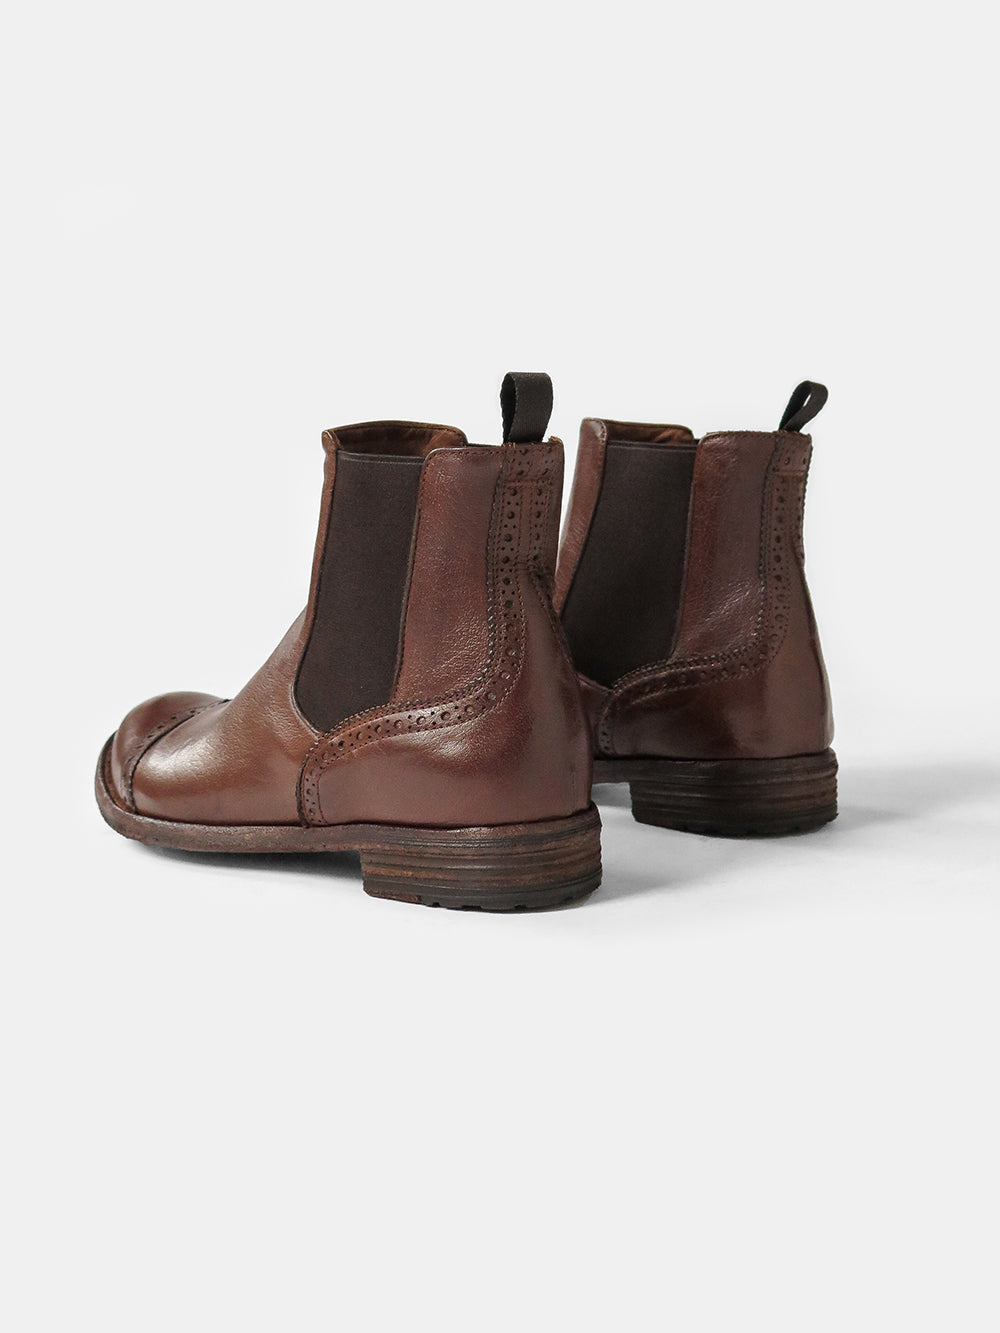 officine creative lexikon boot in sauvage